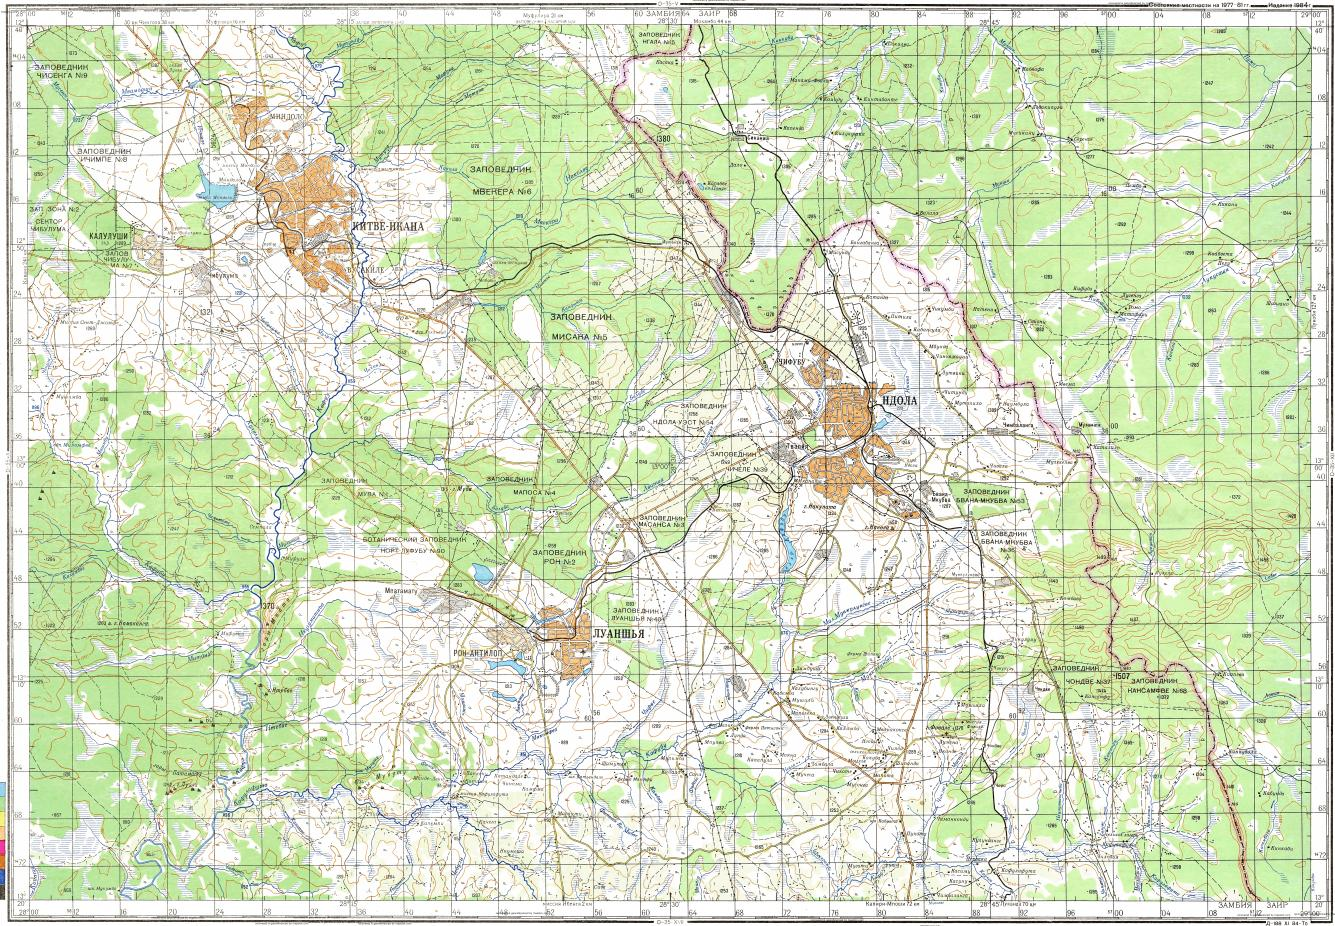 Download topographic map in area of Ndola Kitwe Kalulushi